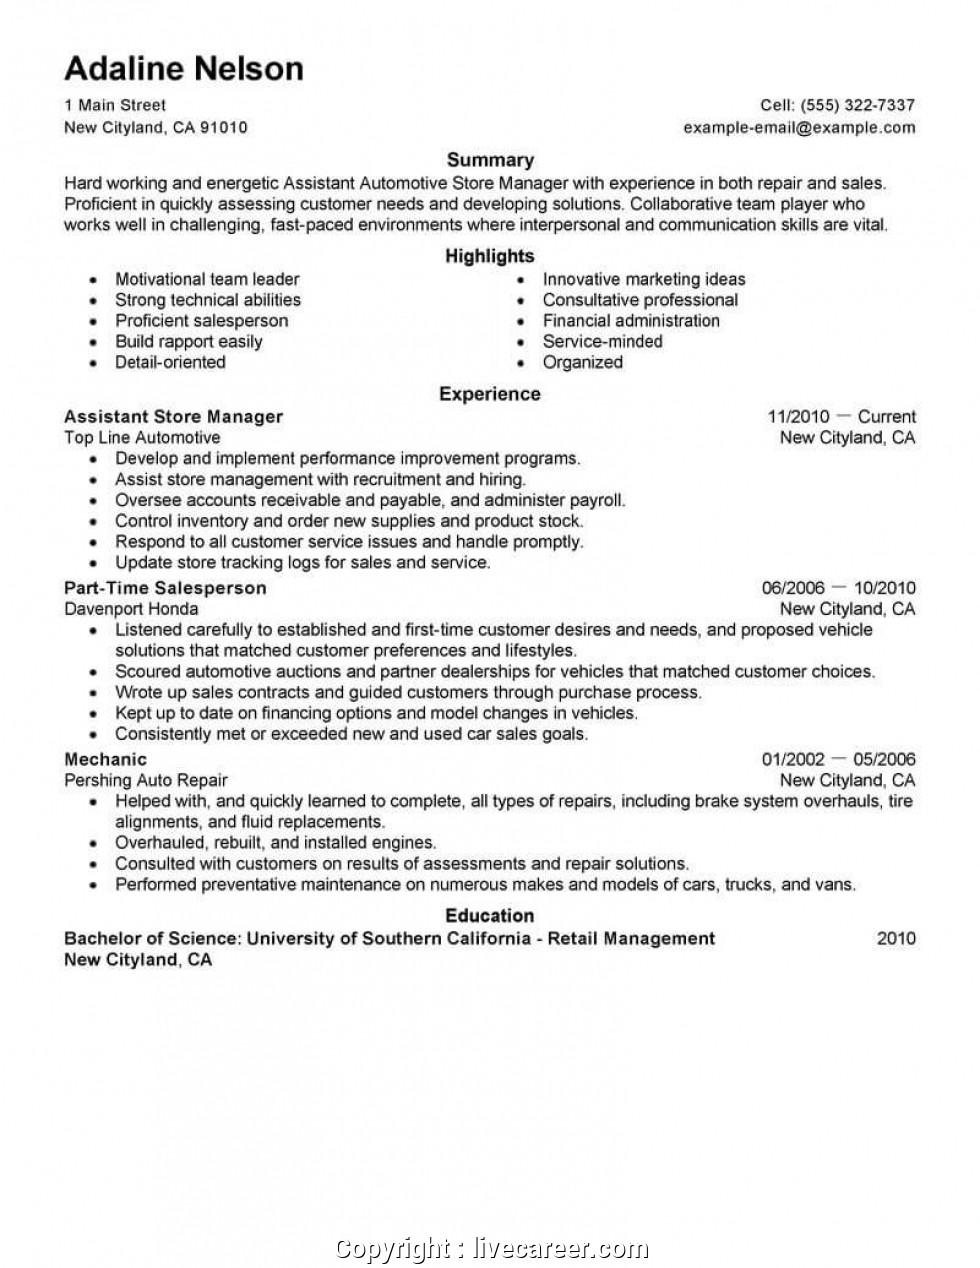 furniture store assistant manager resume november skills simple and abilities mechanical Resume Assistant Manager Skills Resume